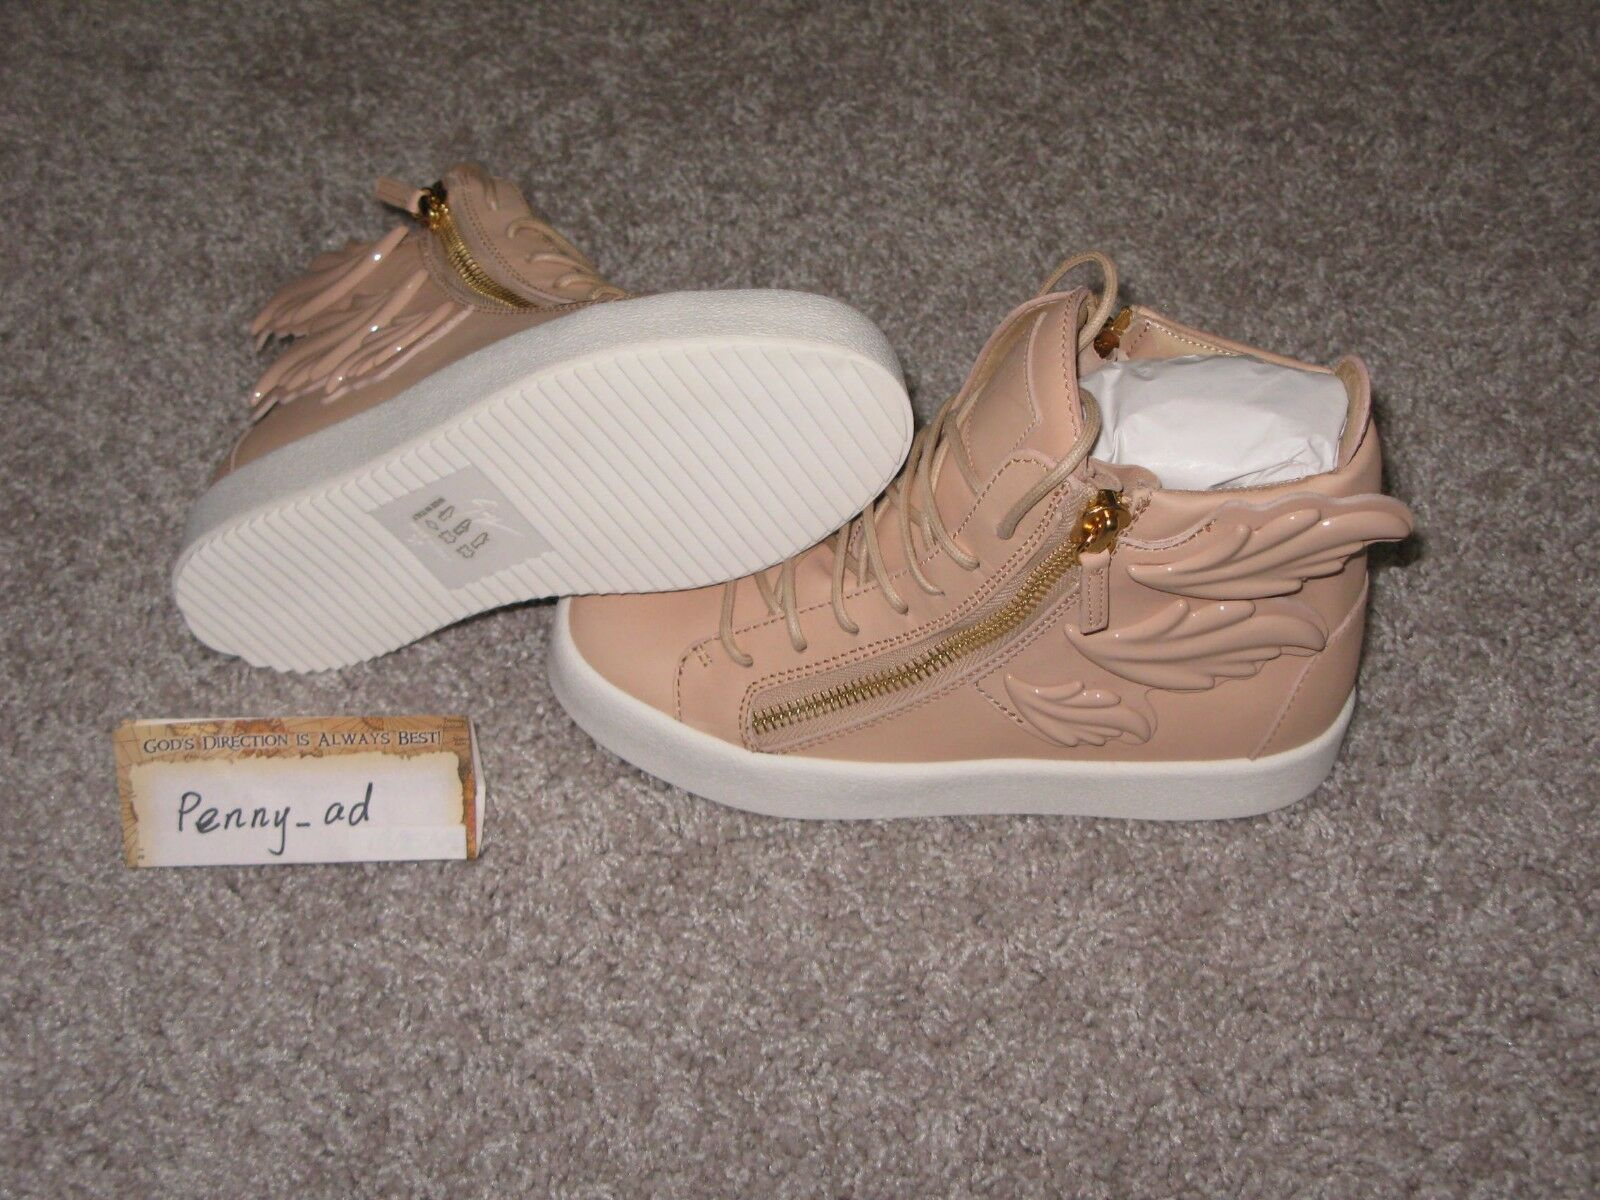 1175 Giuseppe Zanotti Pink Leather Wings London High-Top Sneakers Euro 37 US 7